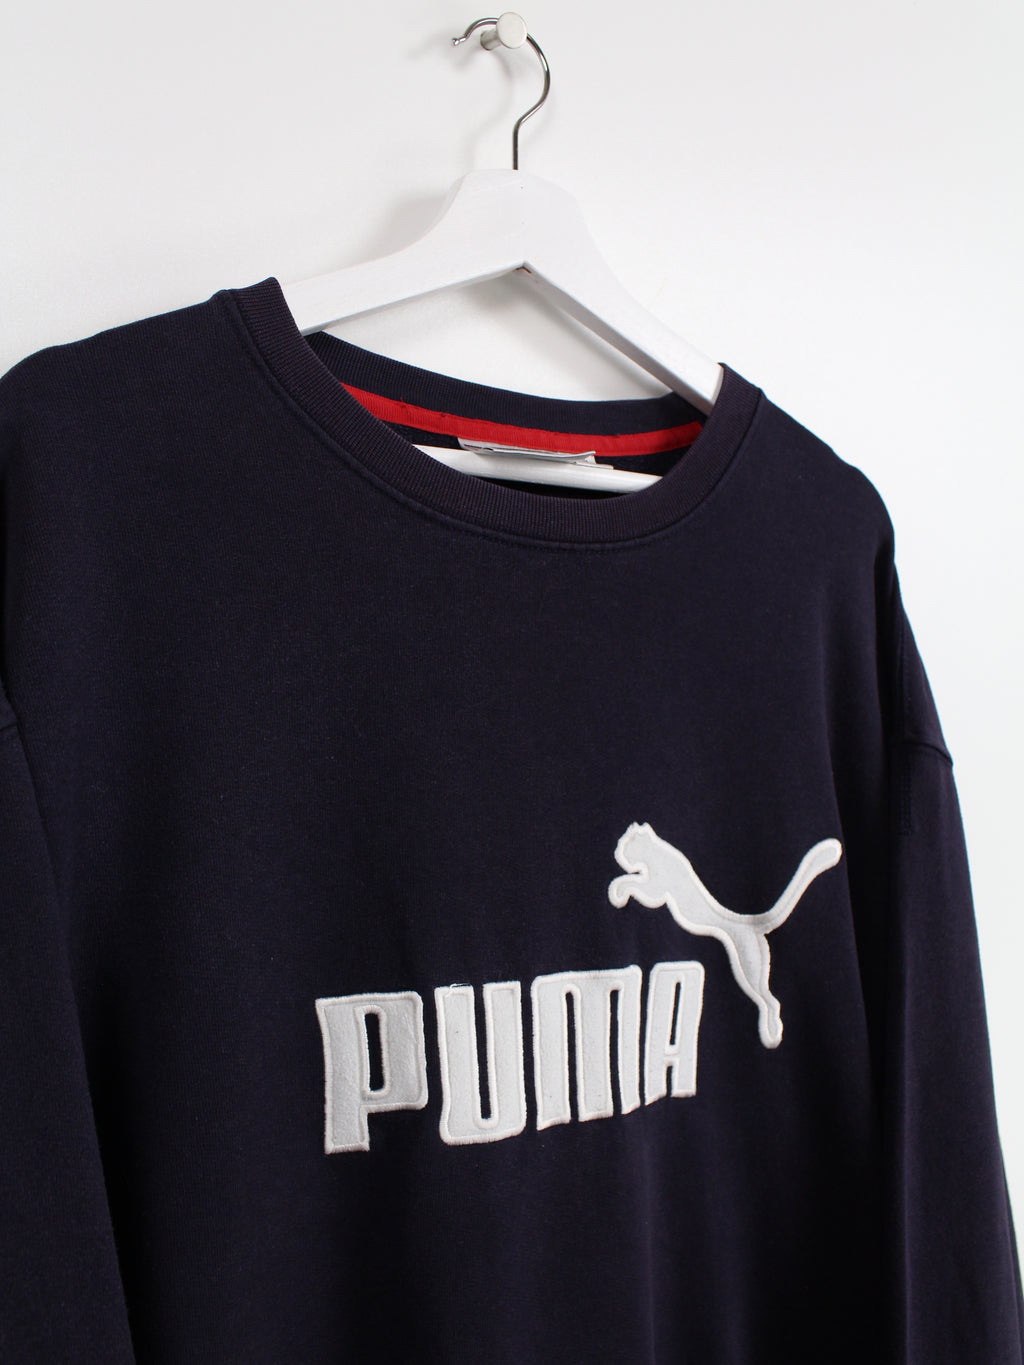 Lacoste Polo Sweatshirt Orange XL